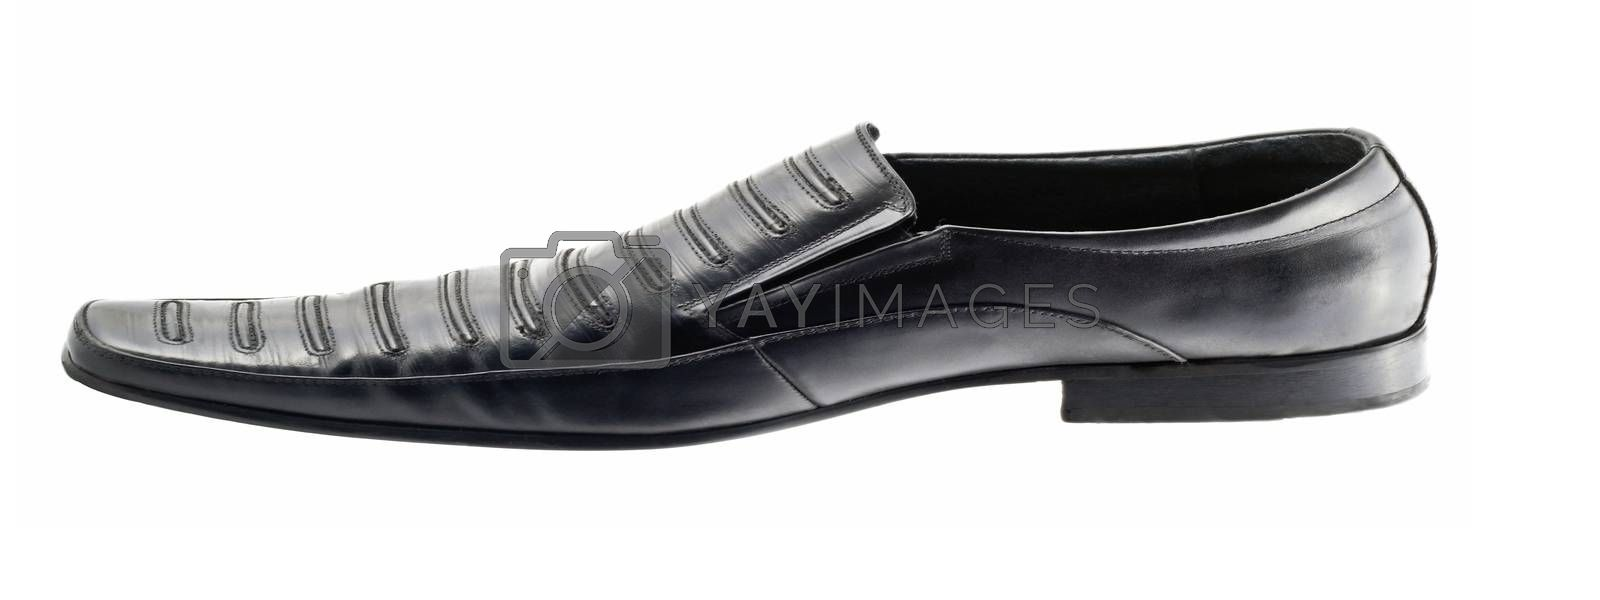 mens loafers on white background beauty Fashion